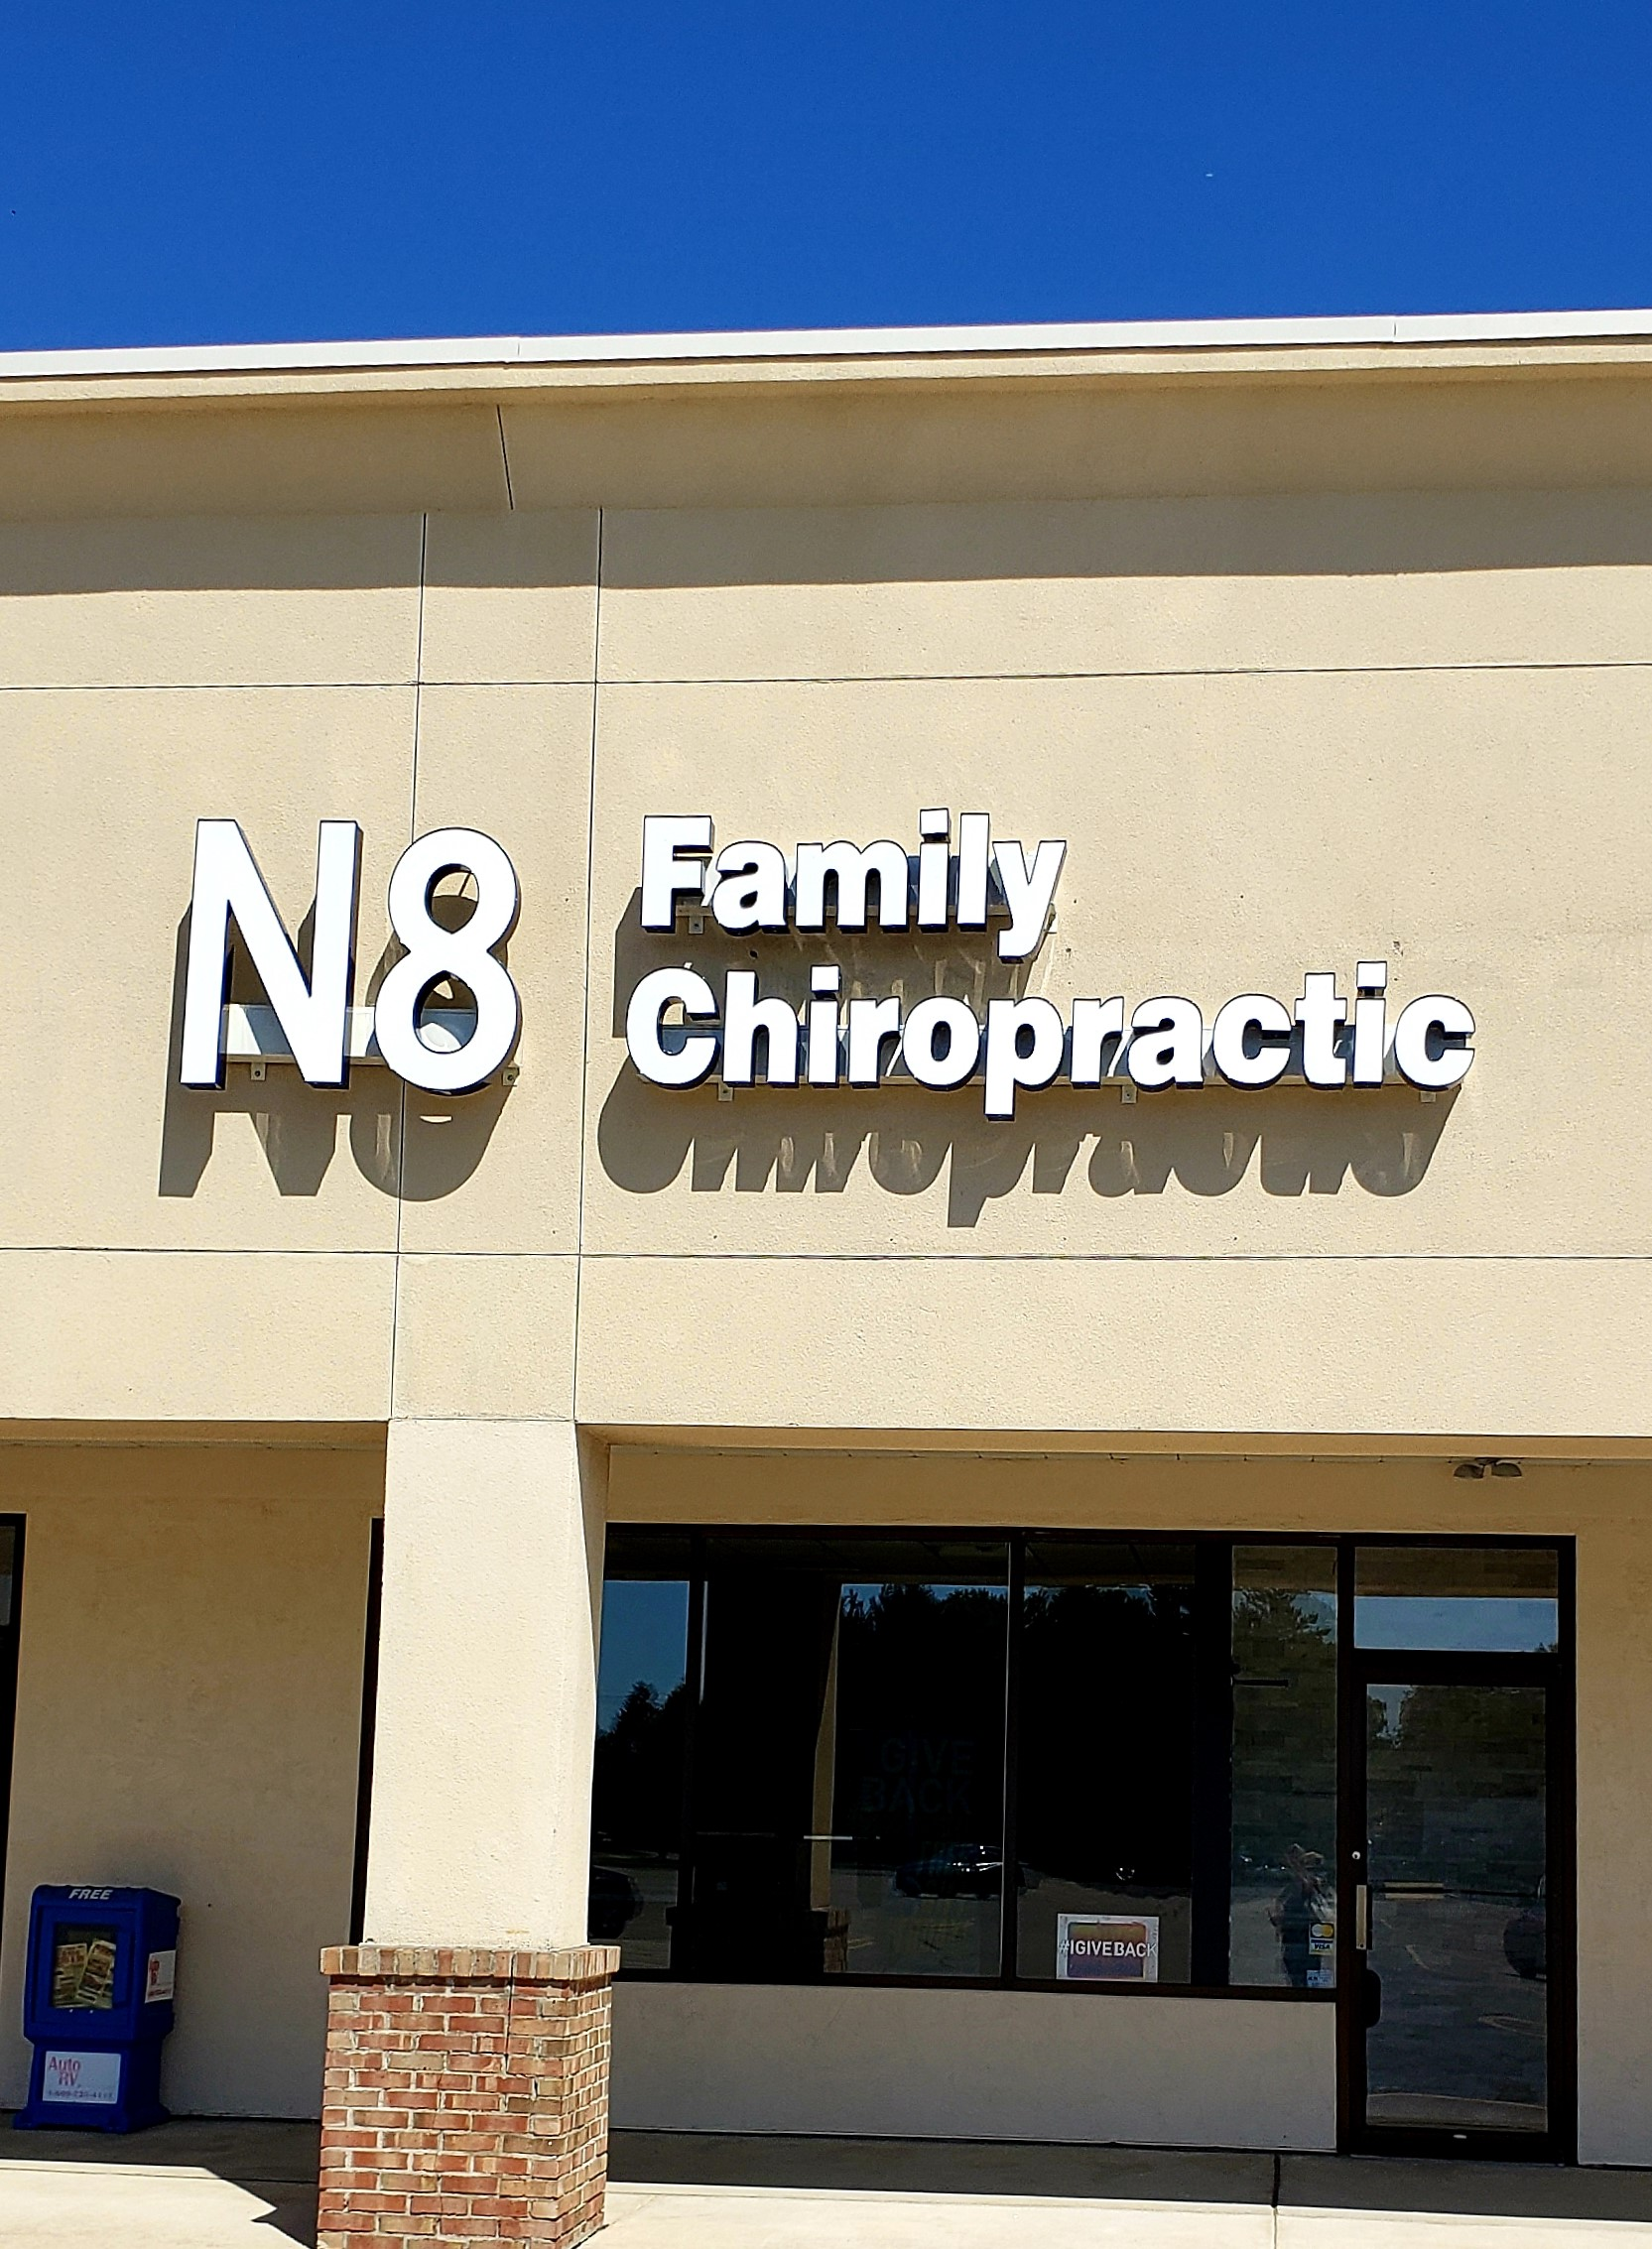 n8-family-chiropractic-lancaster-oh-east-main-street